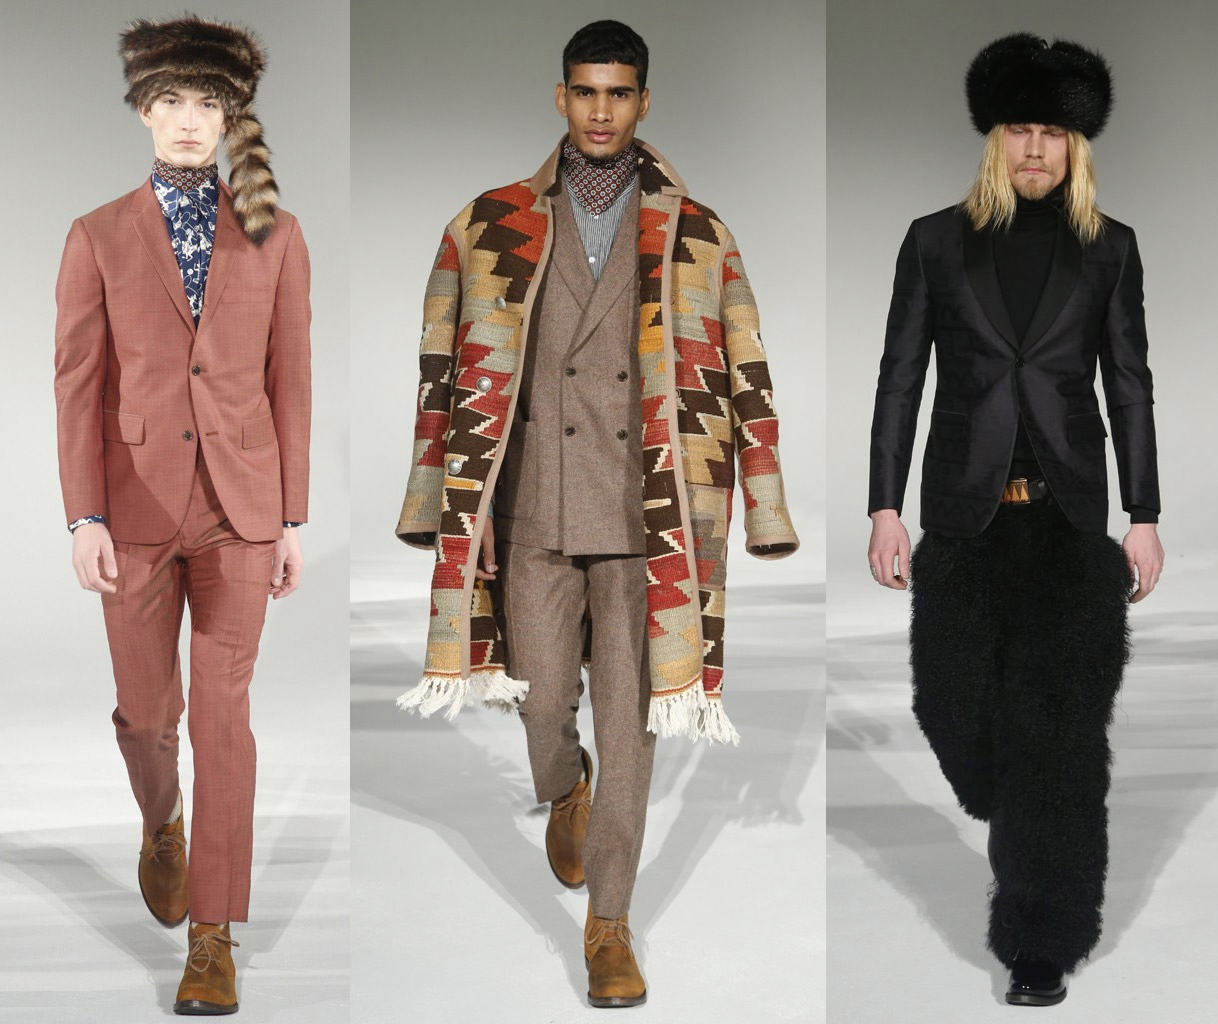 NYFW: David Hart Autumn/Winter 2015 Collection